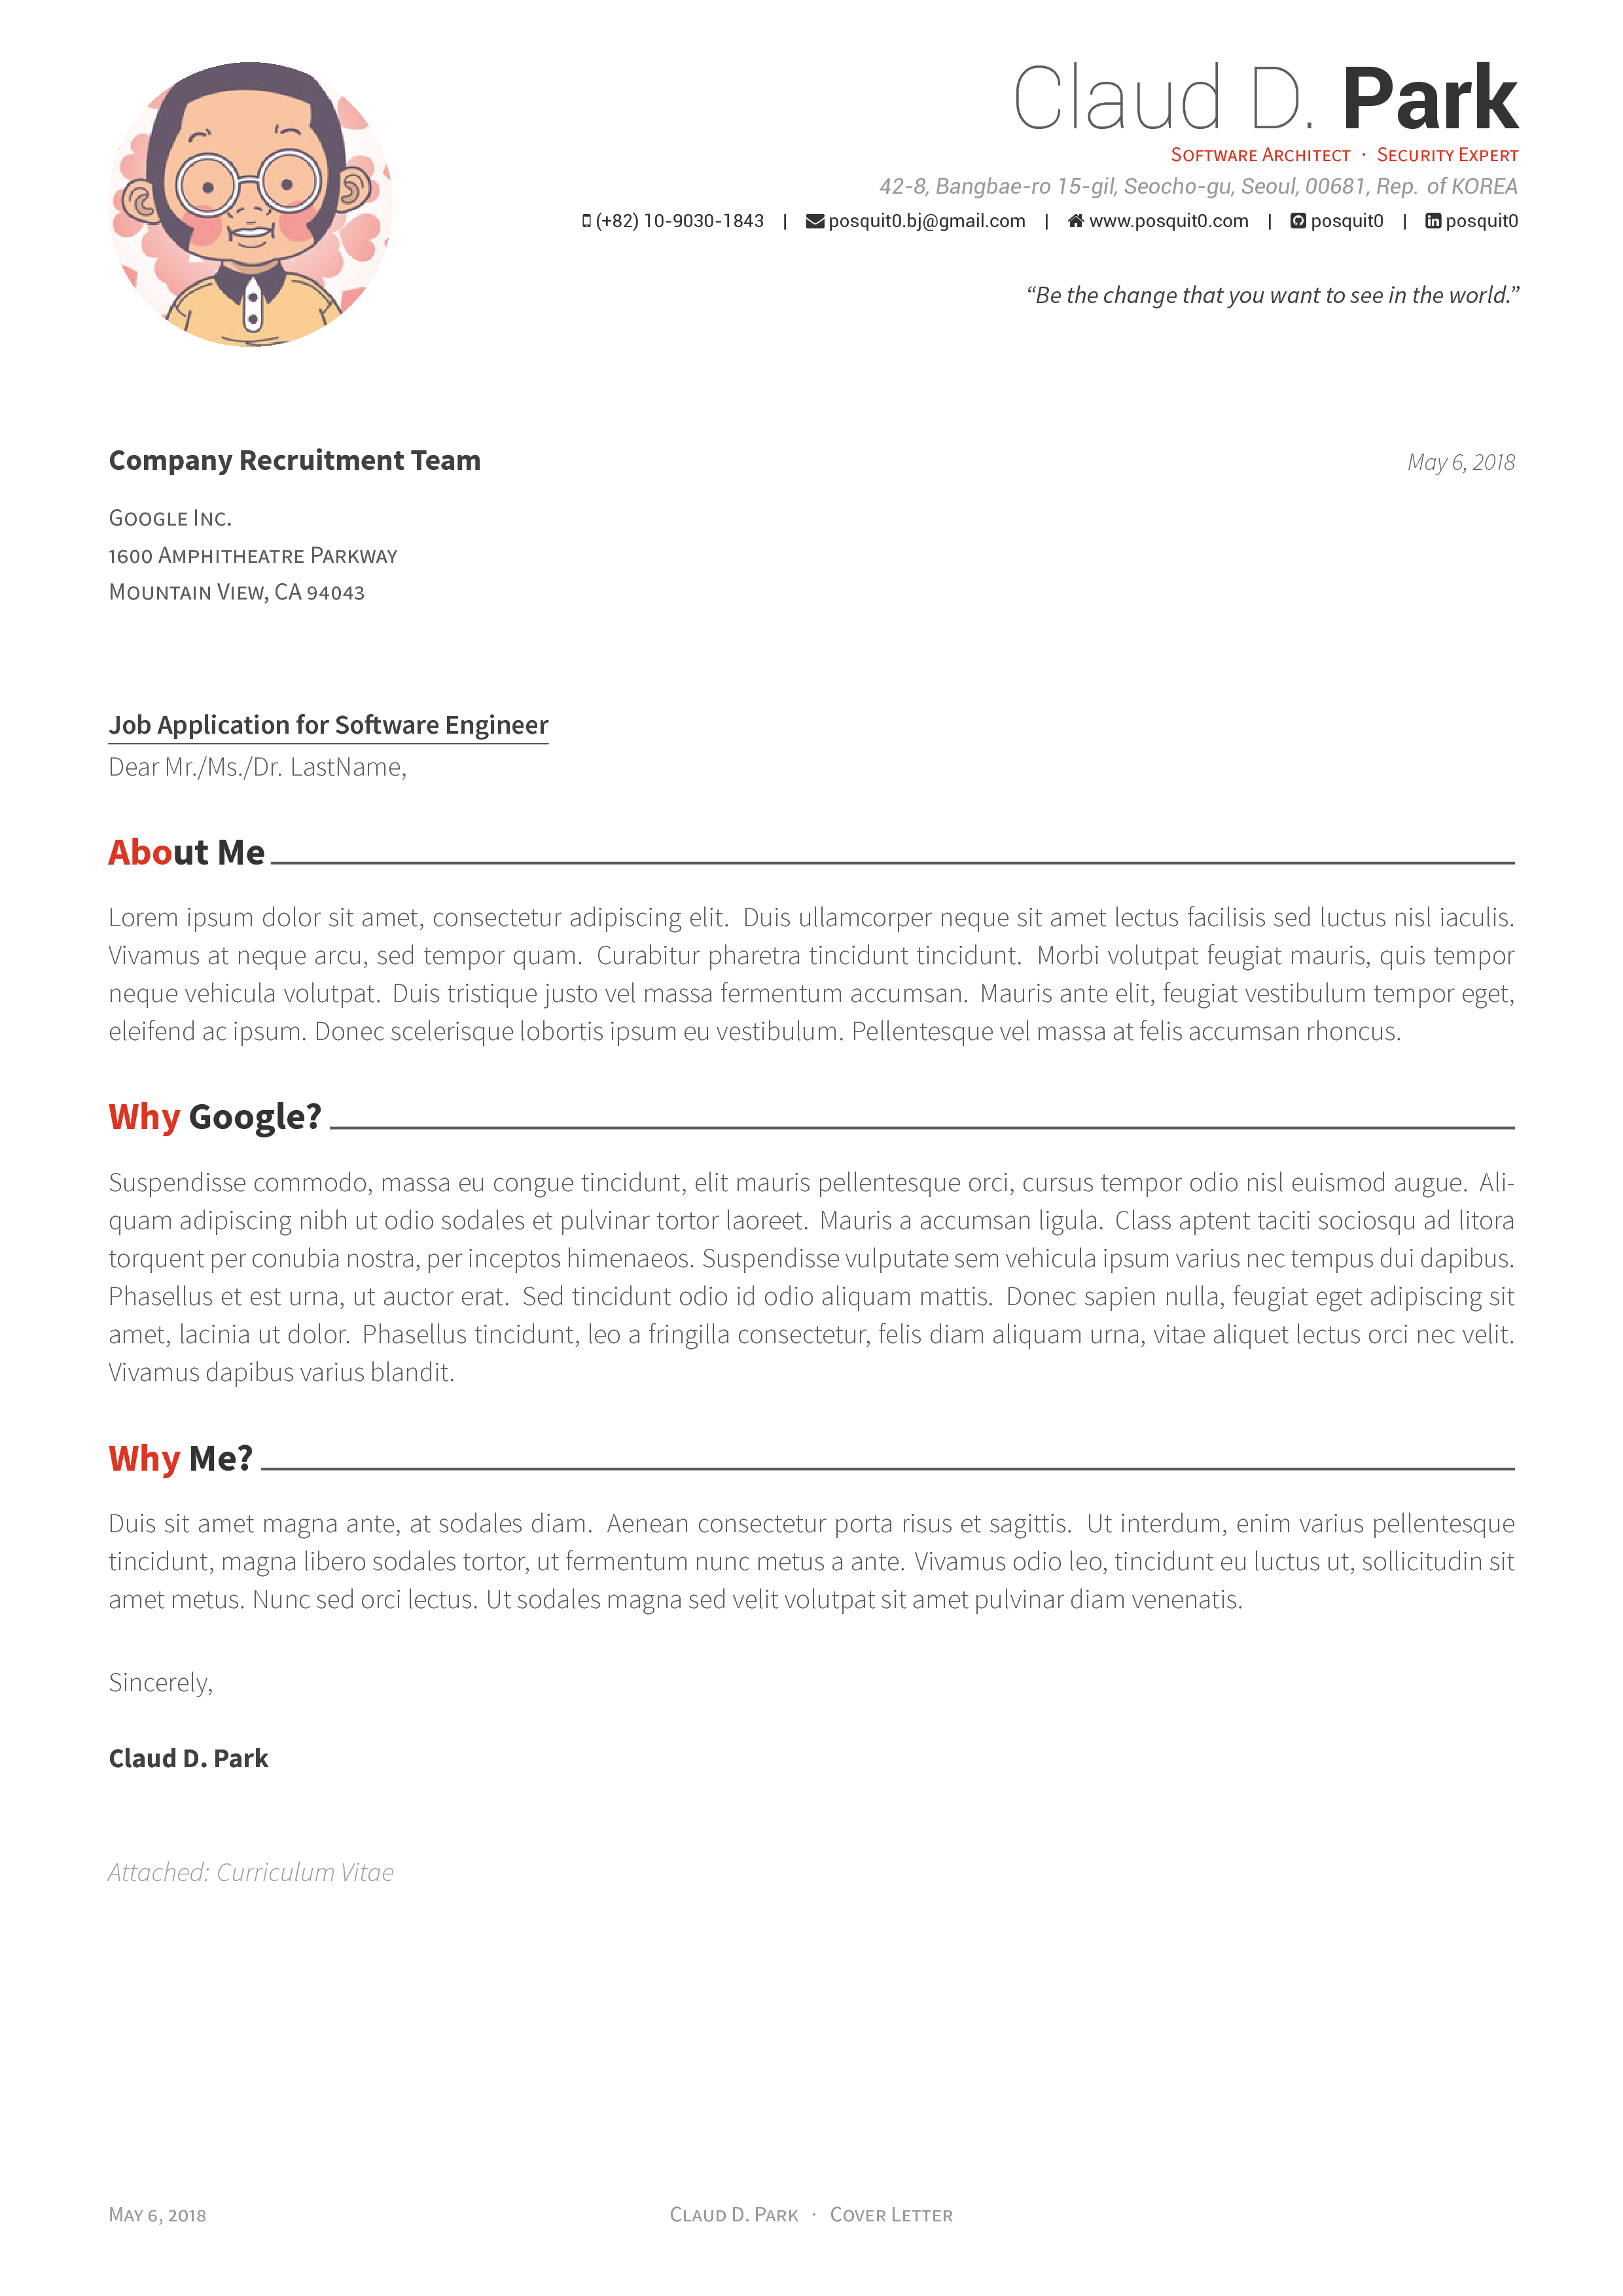 Cover Letter(Awesome)